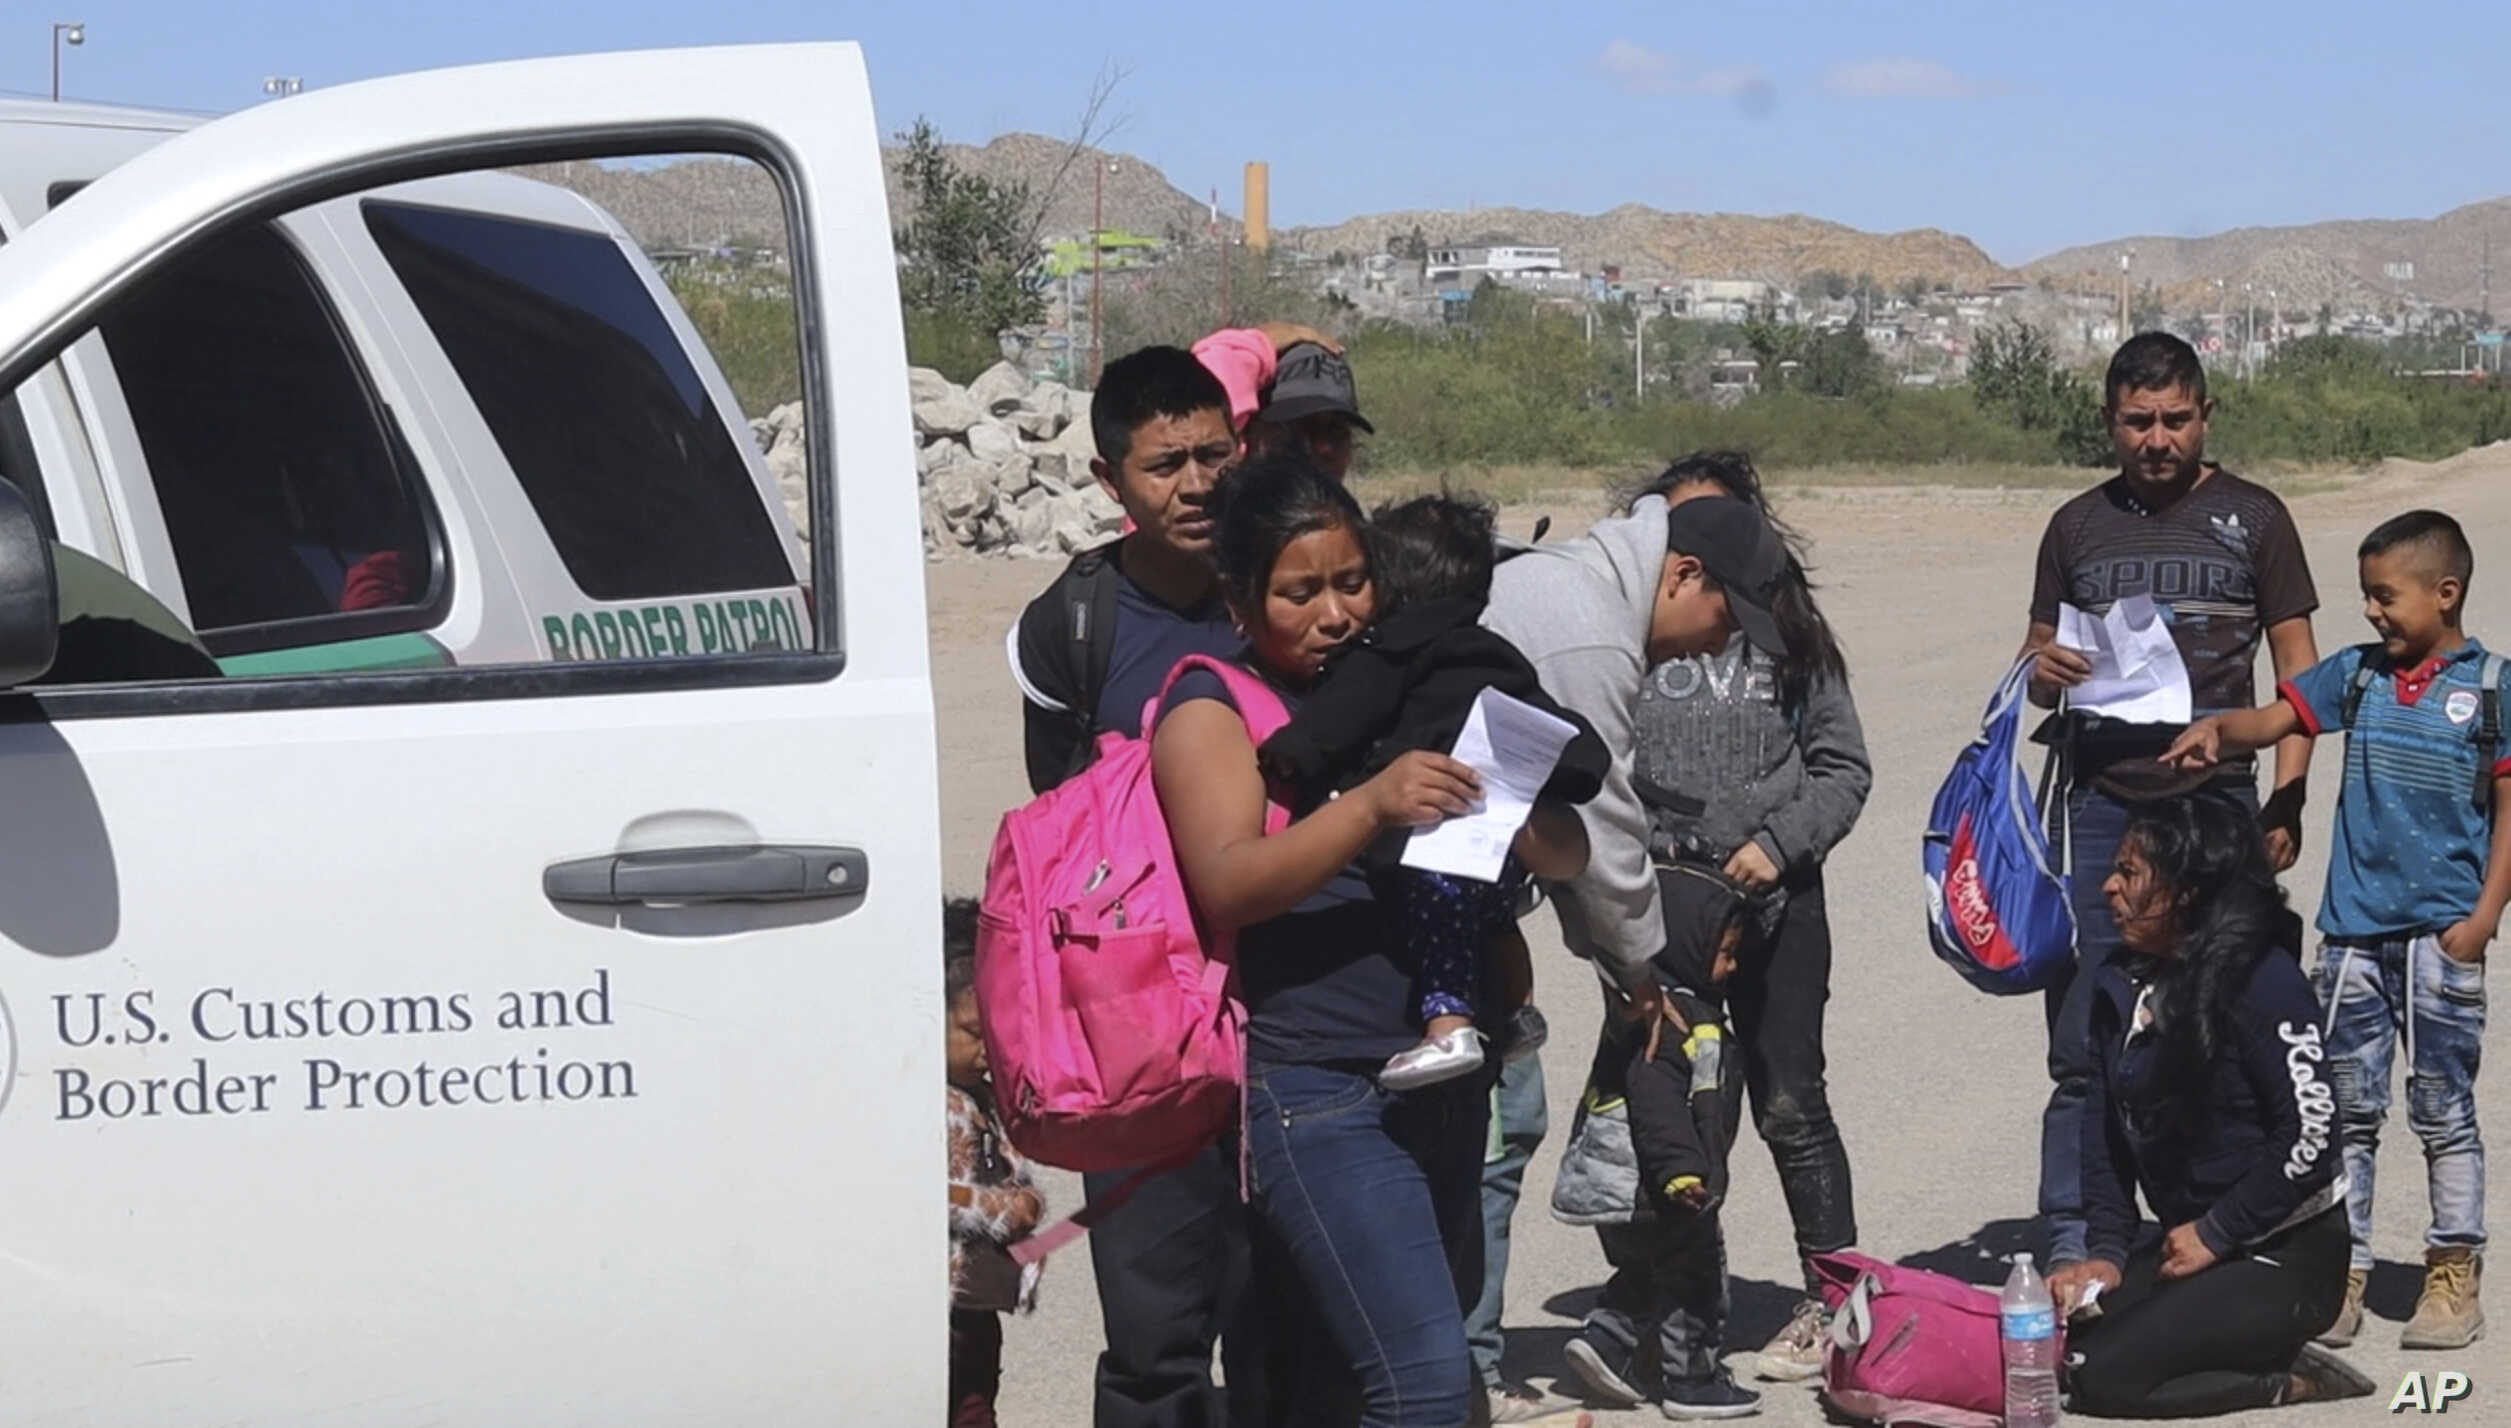 In this April 2019, frame from video, migrants turn themselves in to border agents in El Paso, Texas, after crossing the US - Mexico border. El Paso has swiftly become one of the busiest corridors for illegal border crossings in the U.S. after years…